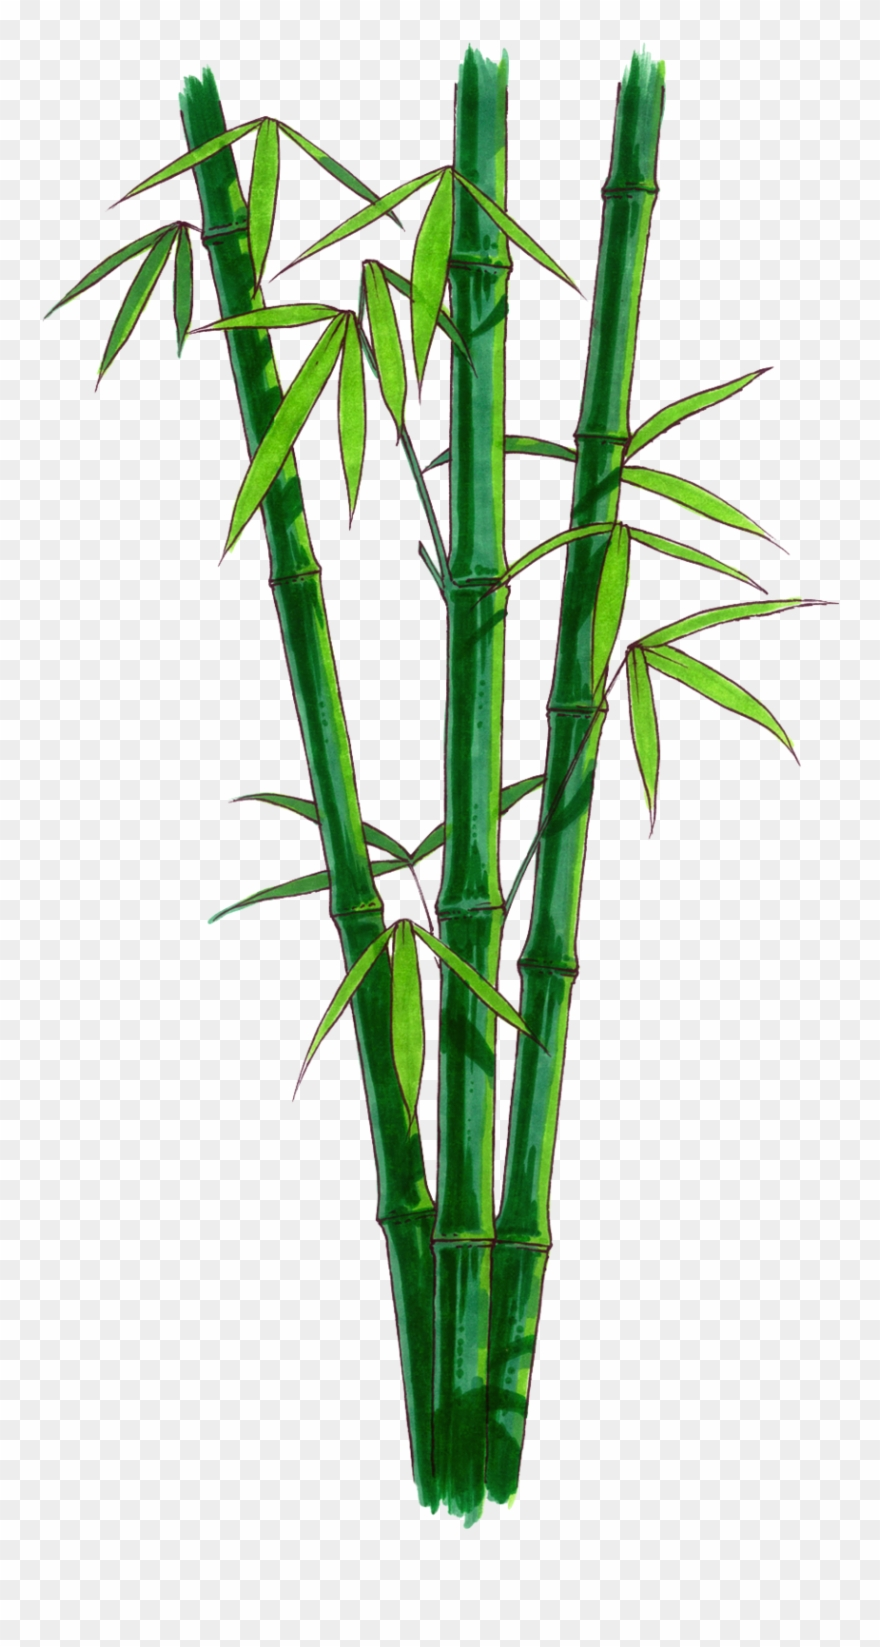 Bamboo Png Transparent Free Images Png Only Bamboo.